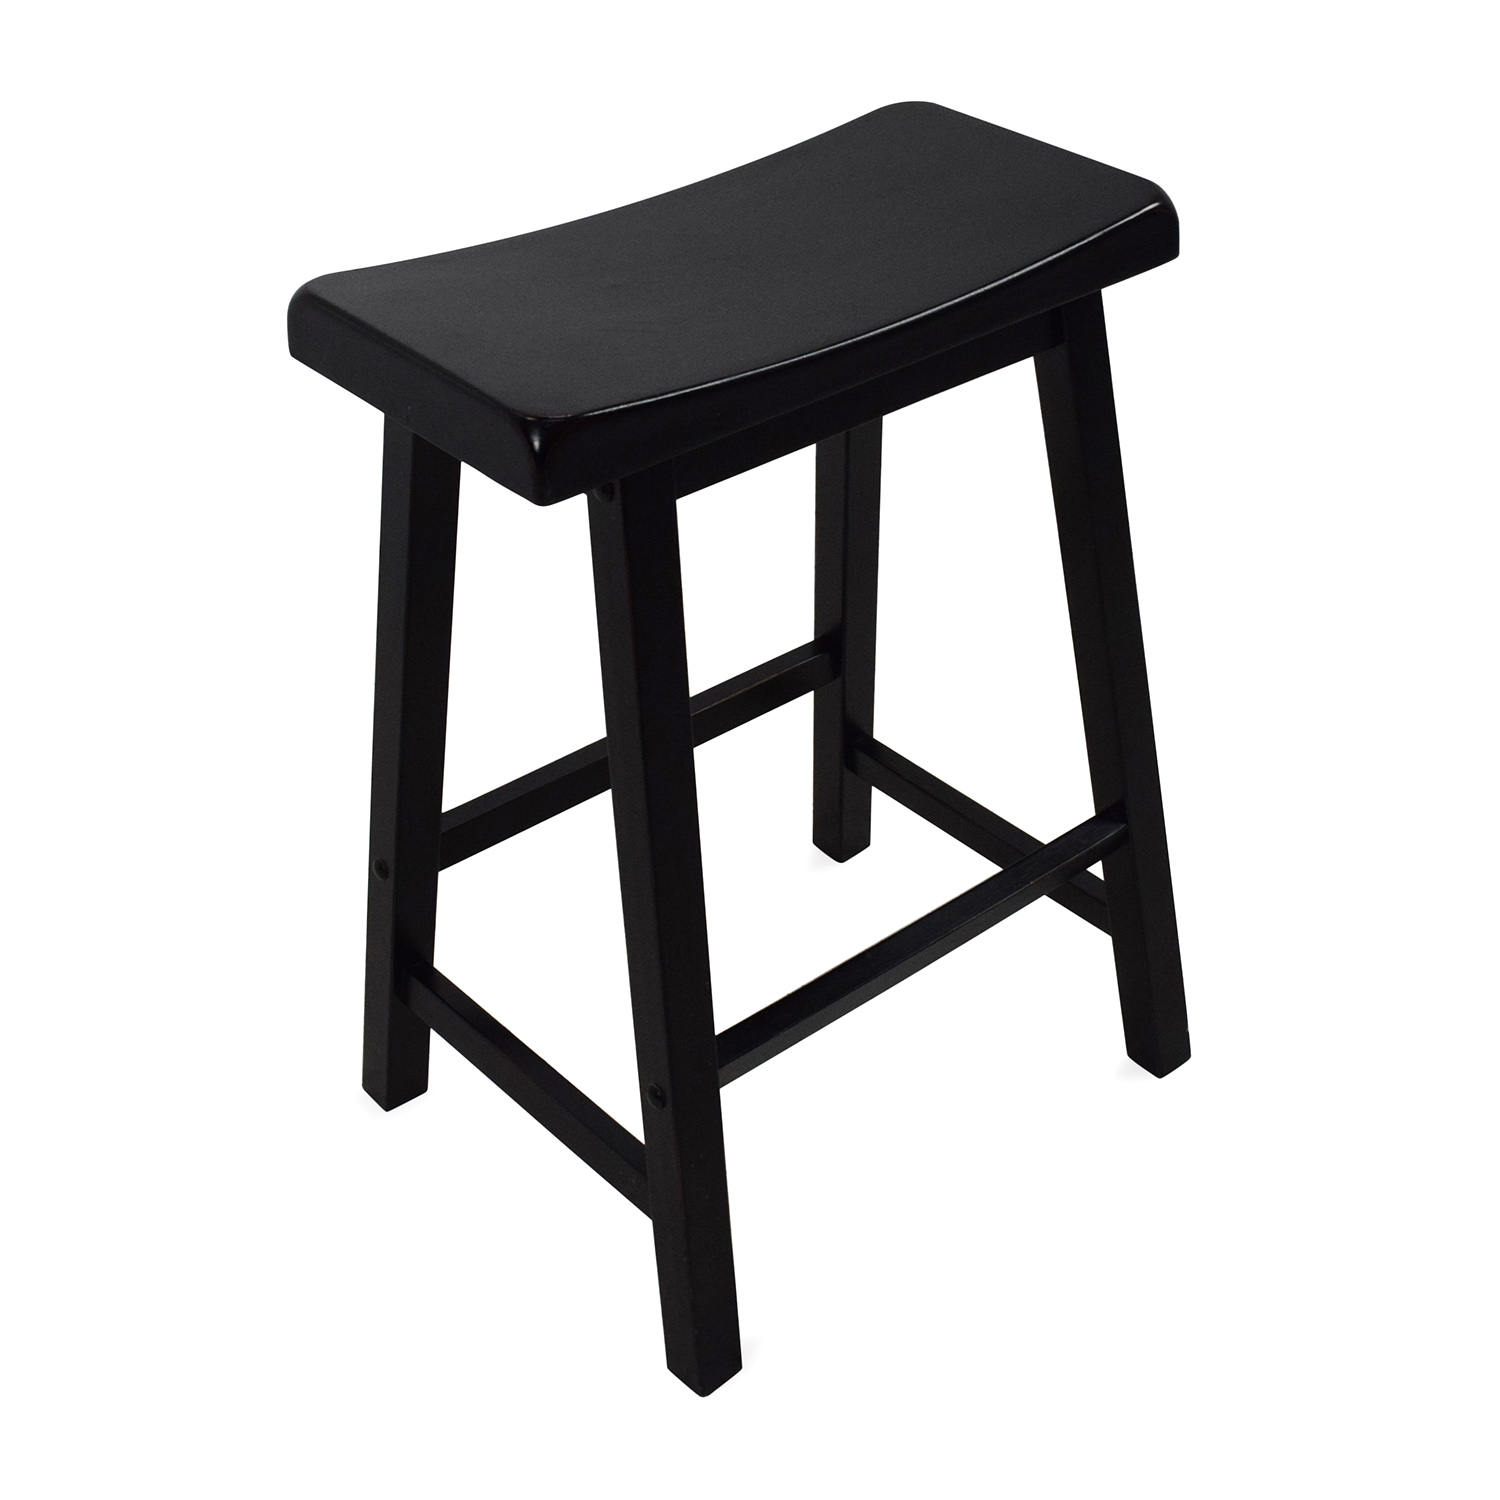 66% OFF Tall Kitchen Table Set Tables